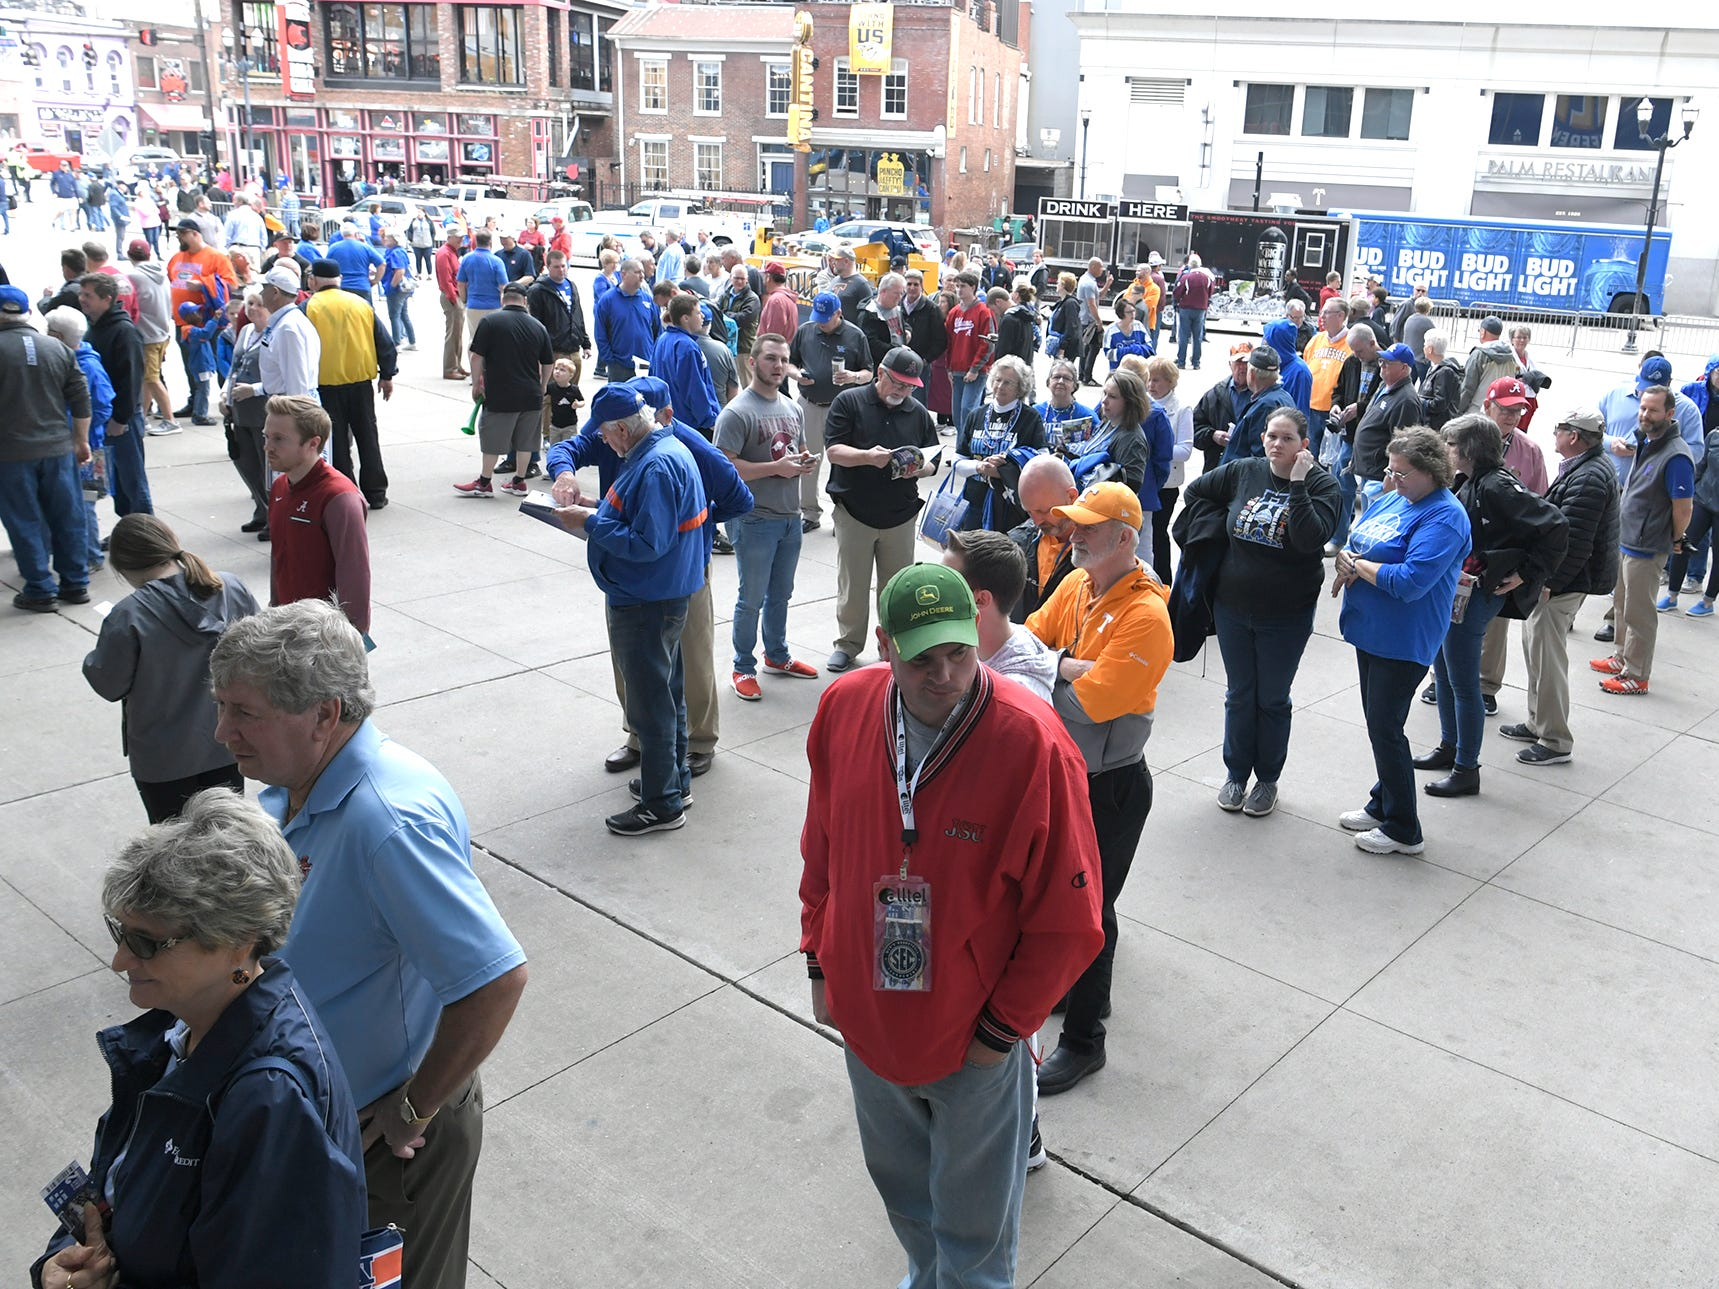 Fans line up to get into Bridgestone Arena for the SEC Men's Basketball Tournament in Nashville on Thursday, March 14, 2019.